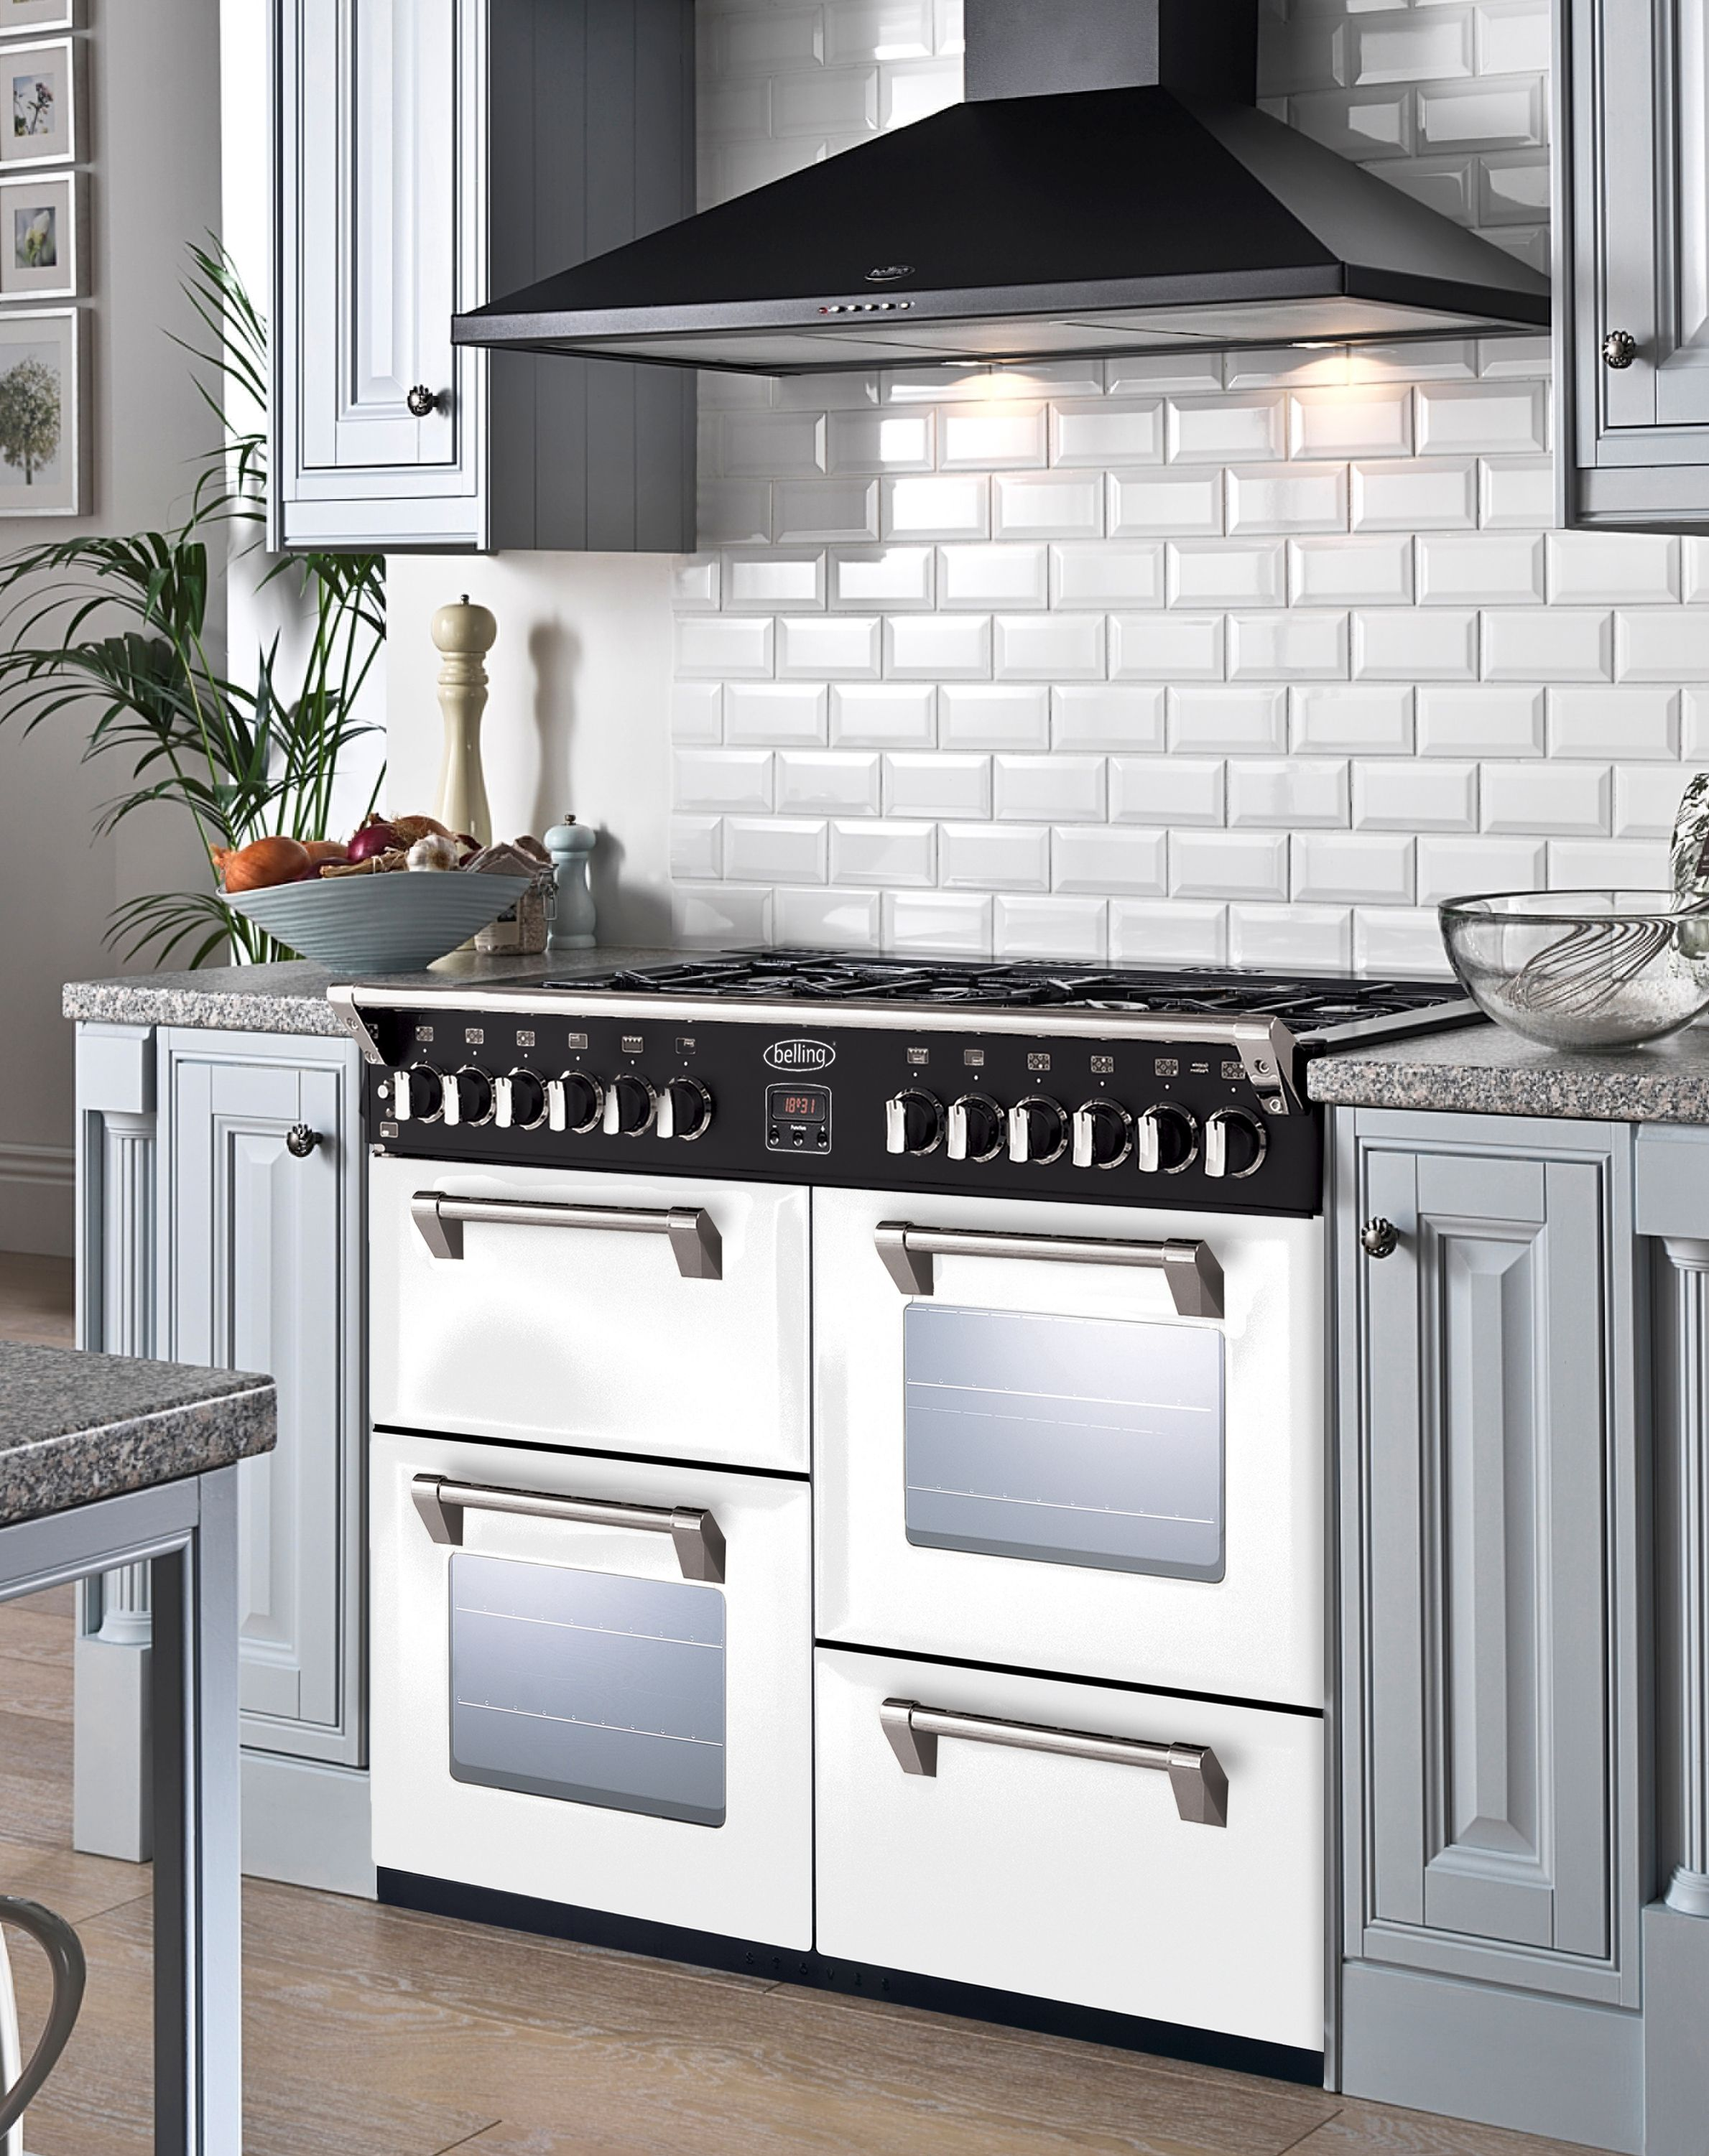 What Kitchen Design Will You Come Up With The White Richmond Range Best Kitchen Design Richmond Review